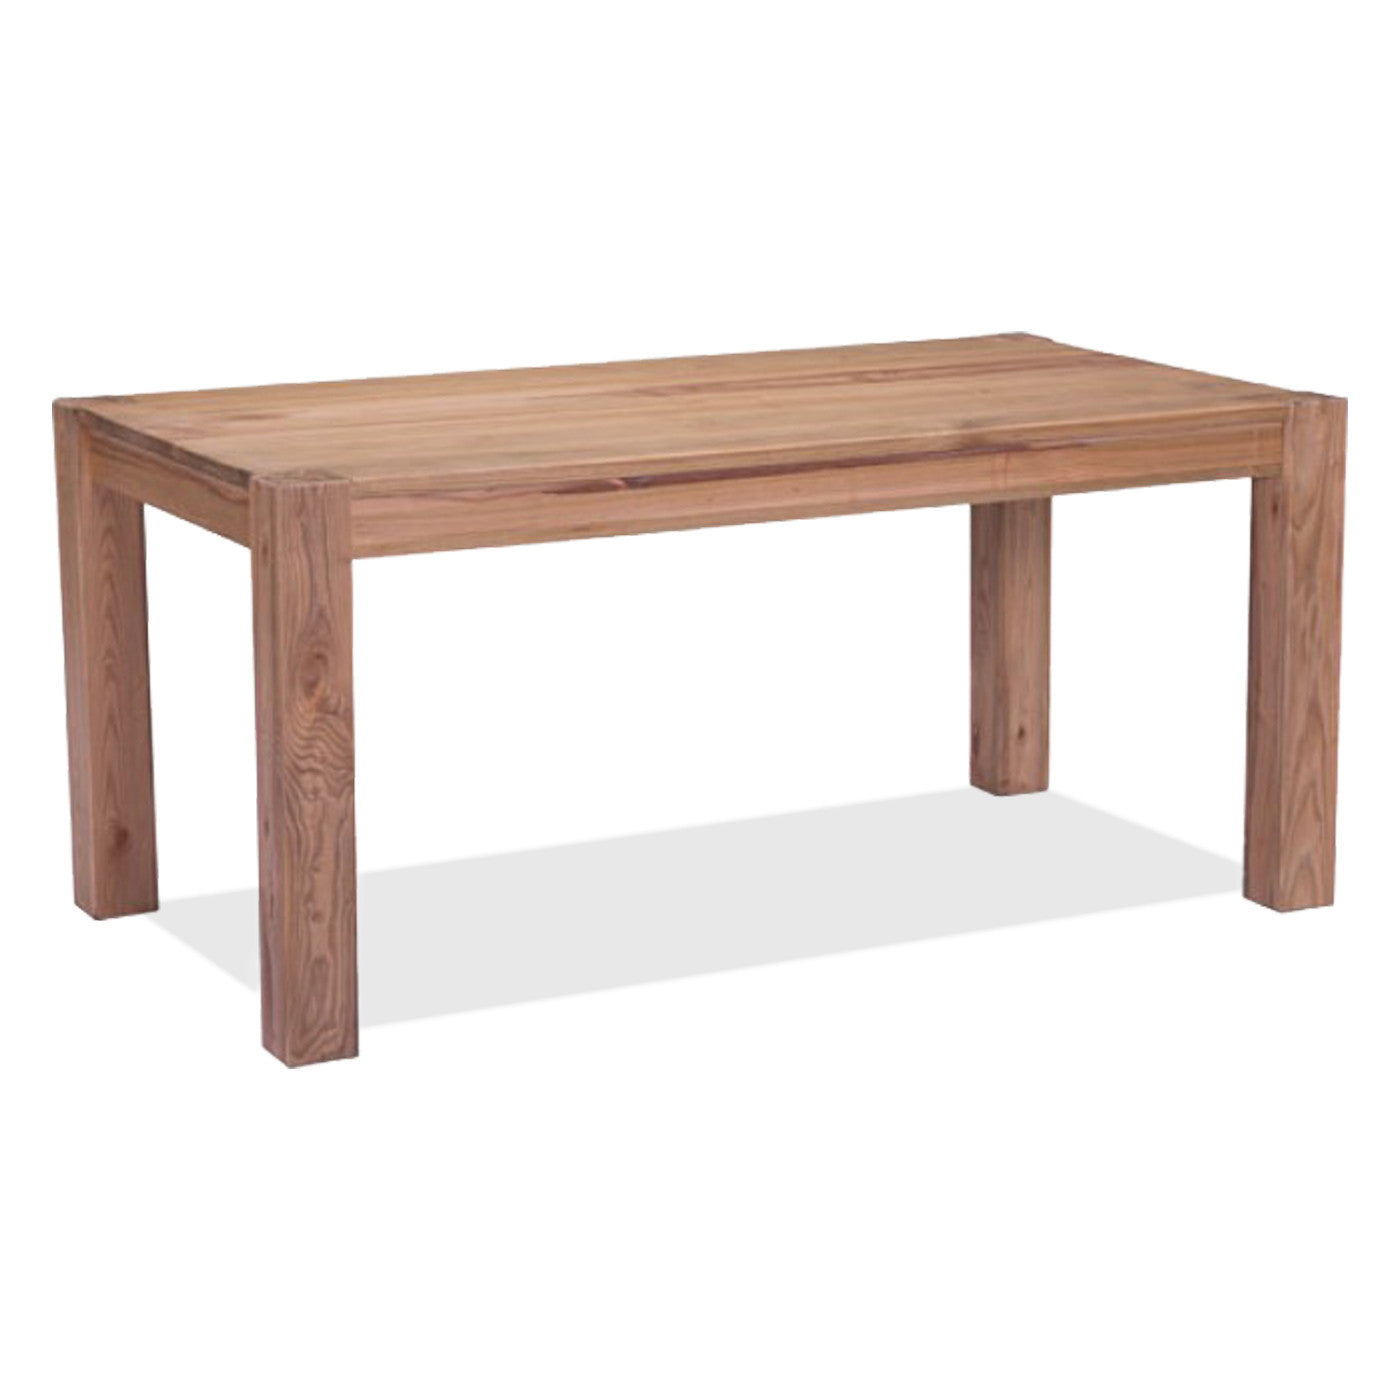 Lucca Dining Table DISTRESSED NATURAL